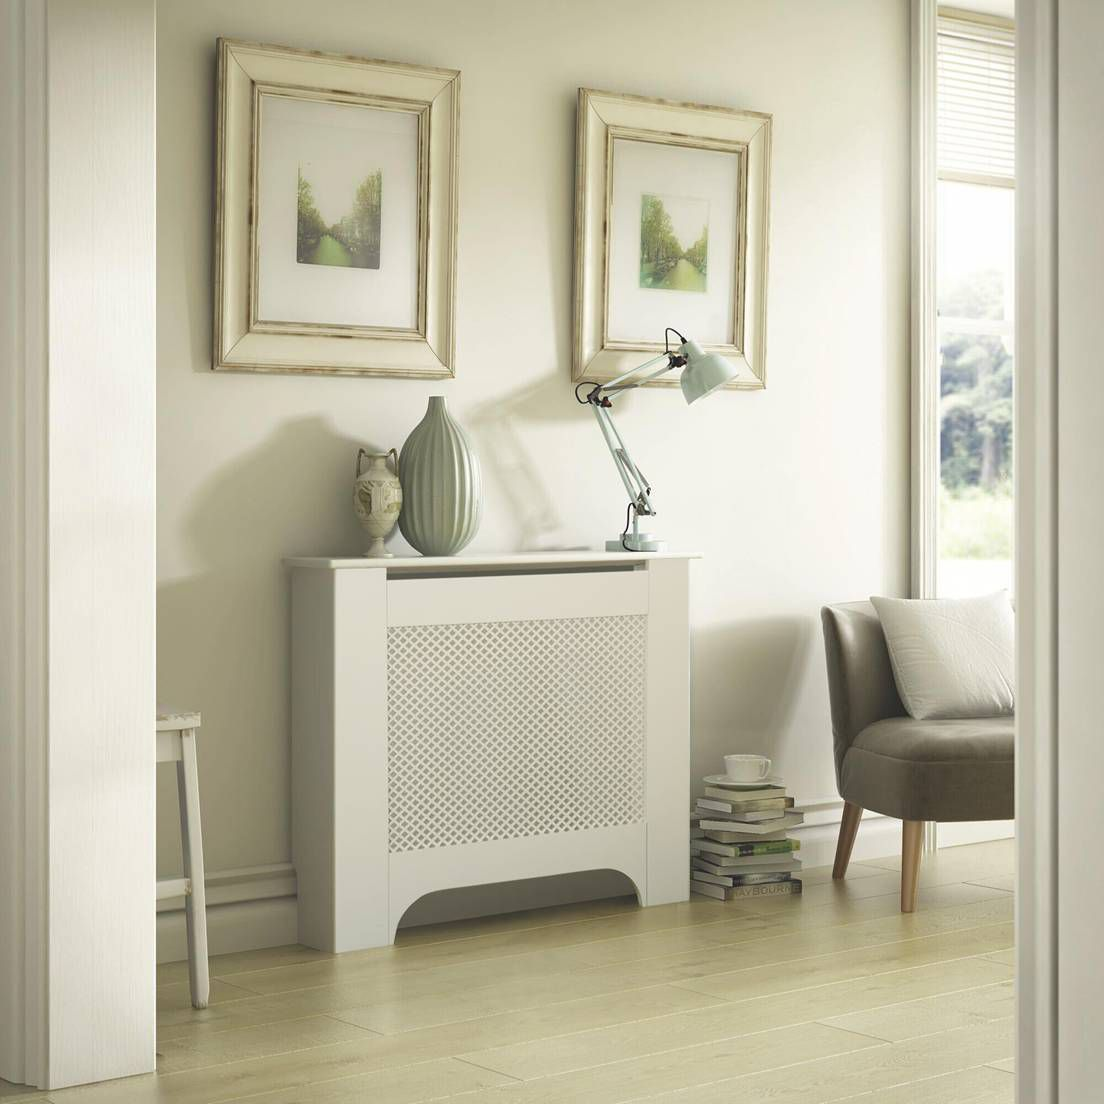 Mayfair Medium White Painted Radiator Cover Departments